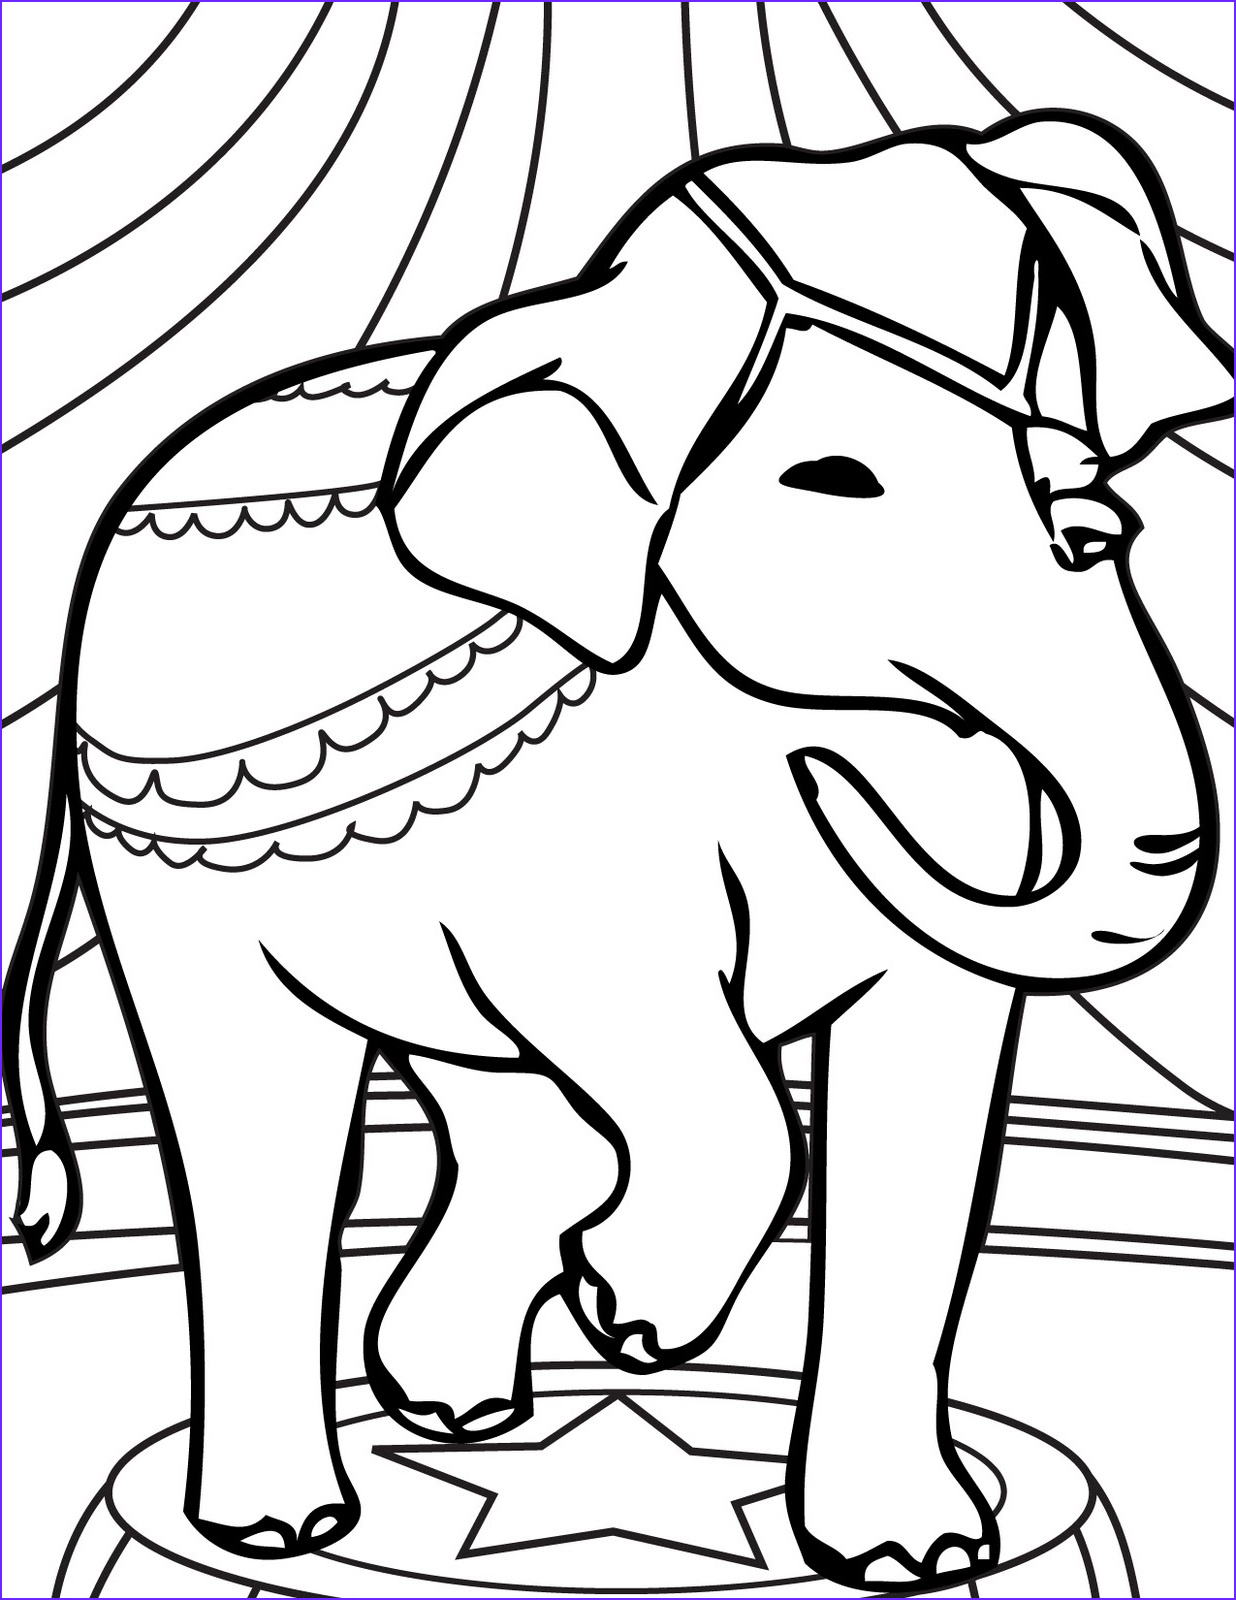 Elephant Coloring Pages Inspirational Stock Circus Elephant Coloring Pages Ideas to Kids